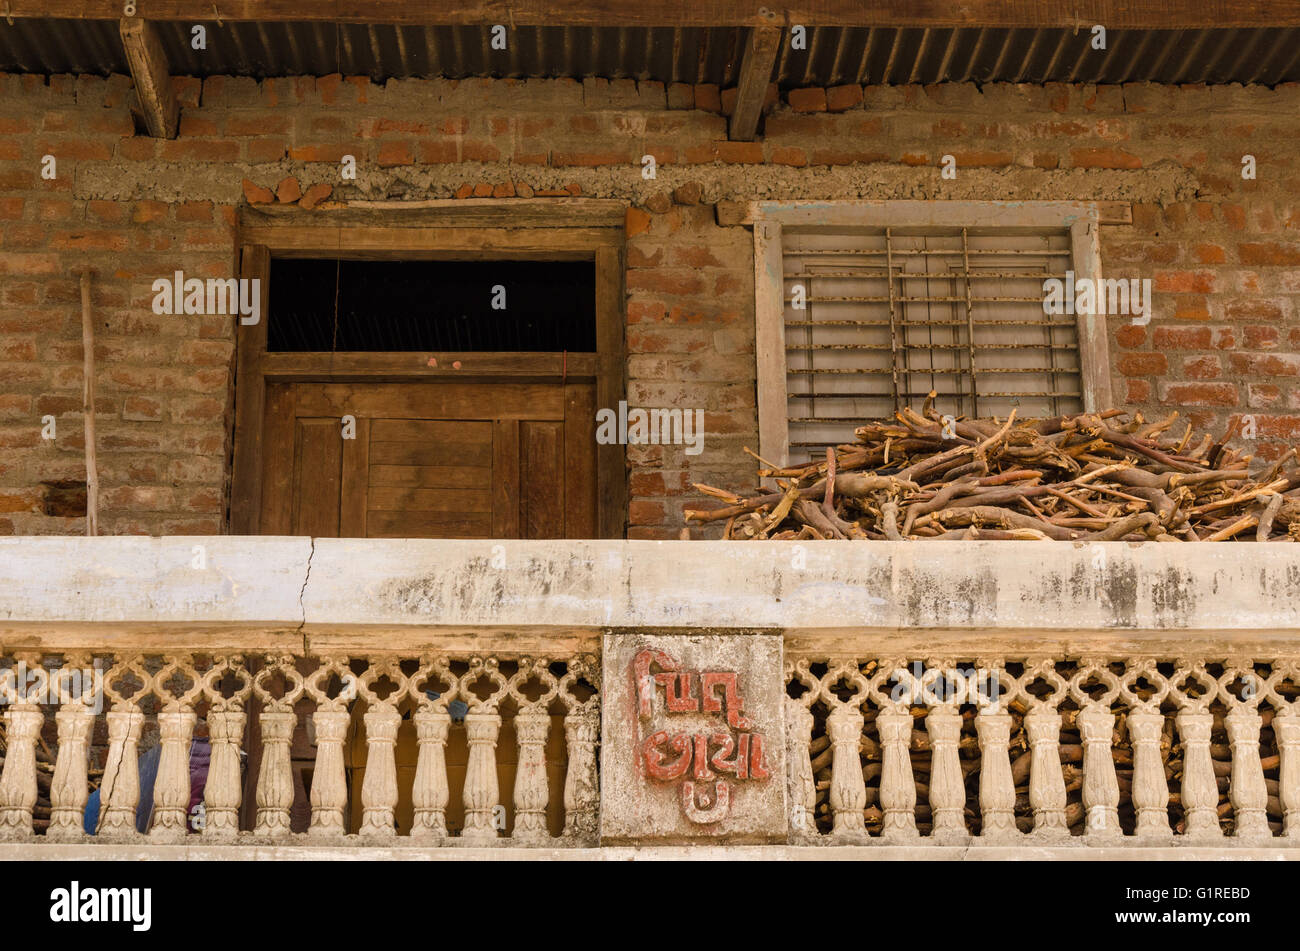 Firewood kept in the balcony of a typical village house in Gujarat, India - Stock Image